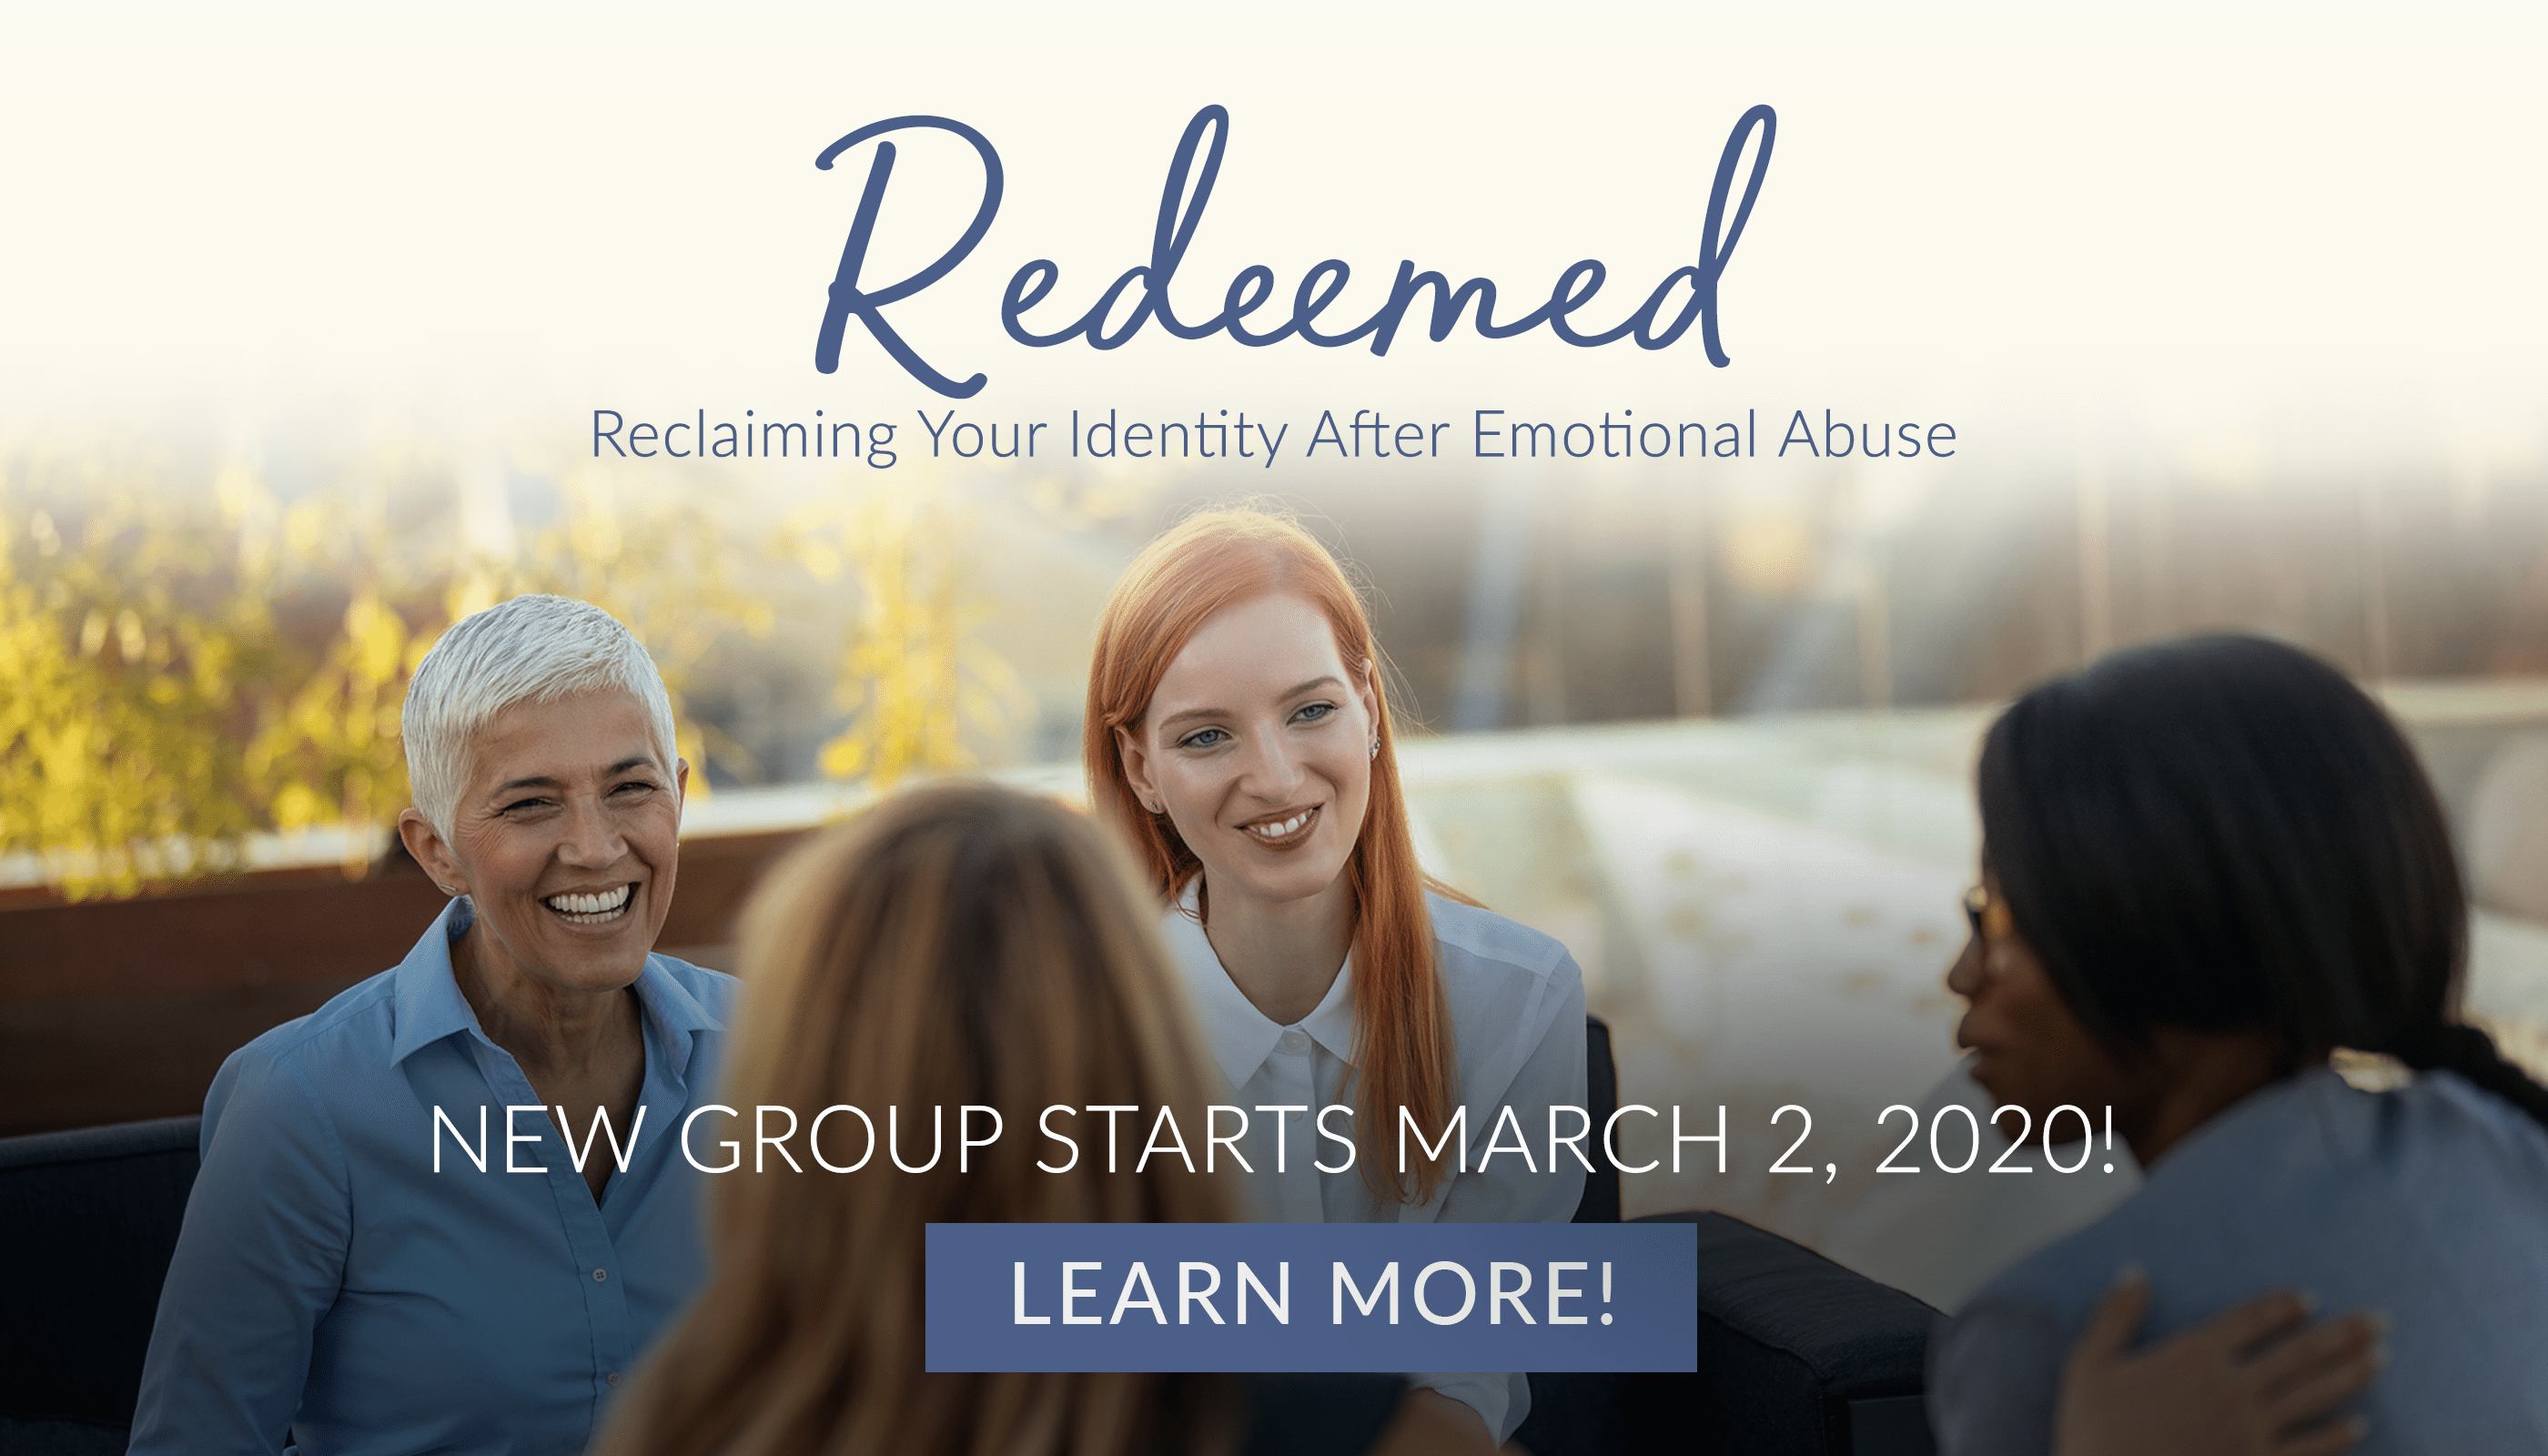 https://marriagerecoverycenter.com/wp-content/uploads/2020/01/Redeemed-2020-03-02.png